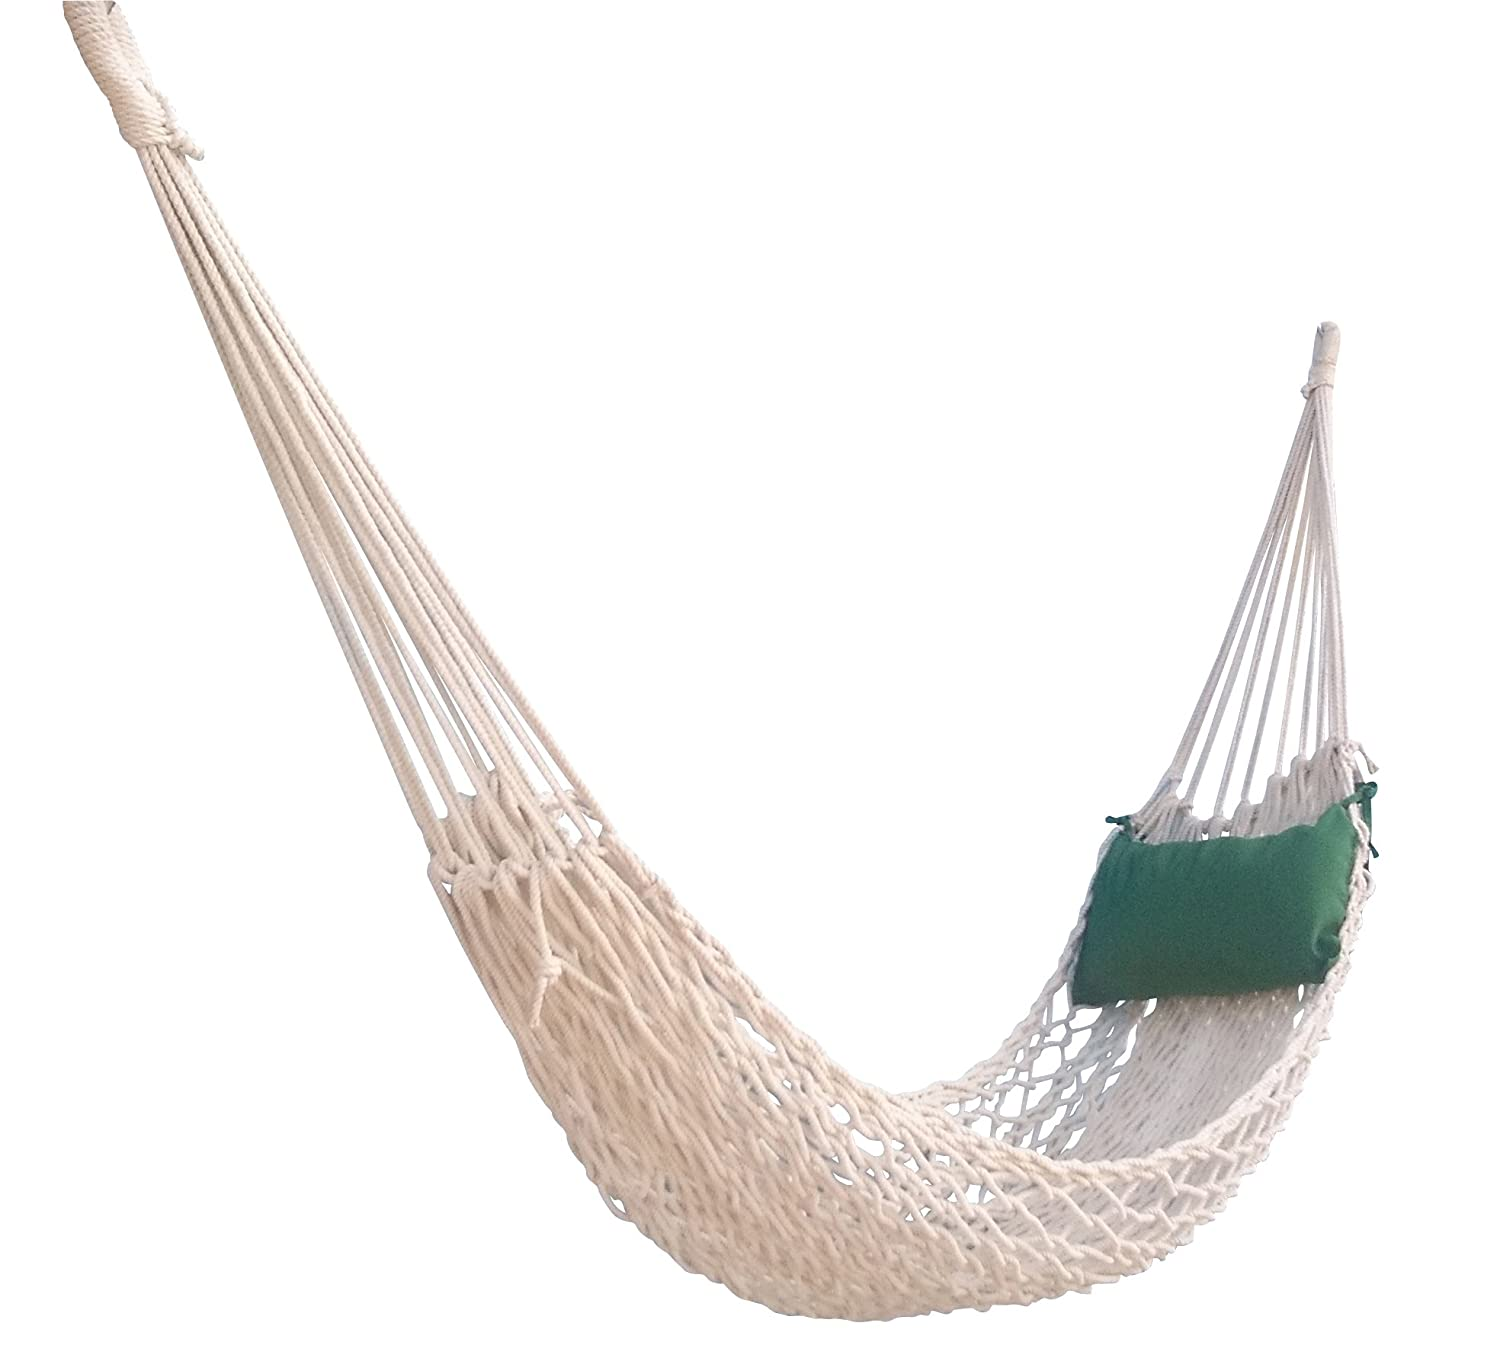 oak n u0027 oak  fortable sleeping hanging hammock single person use   south american hammocks  buy hammocks online at best prices in india   amazon in  rh   amazon in